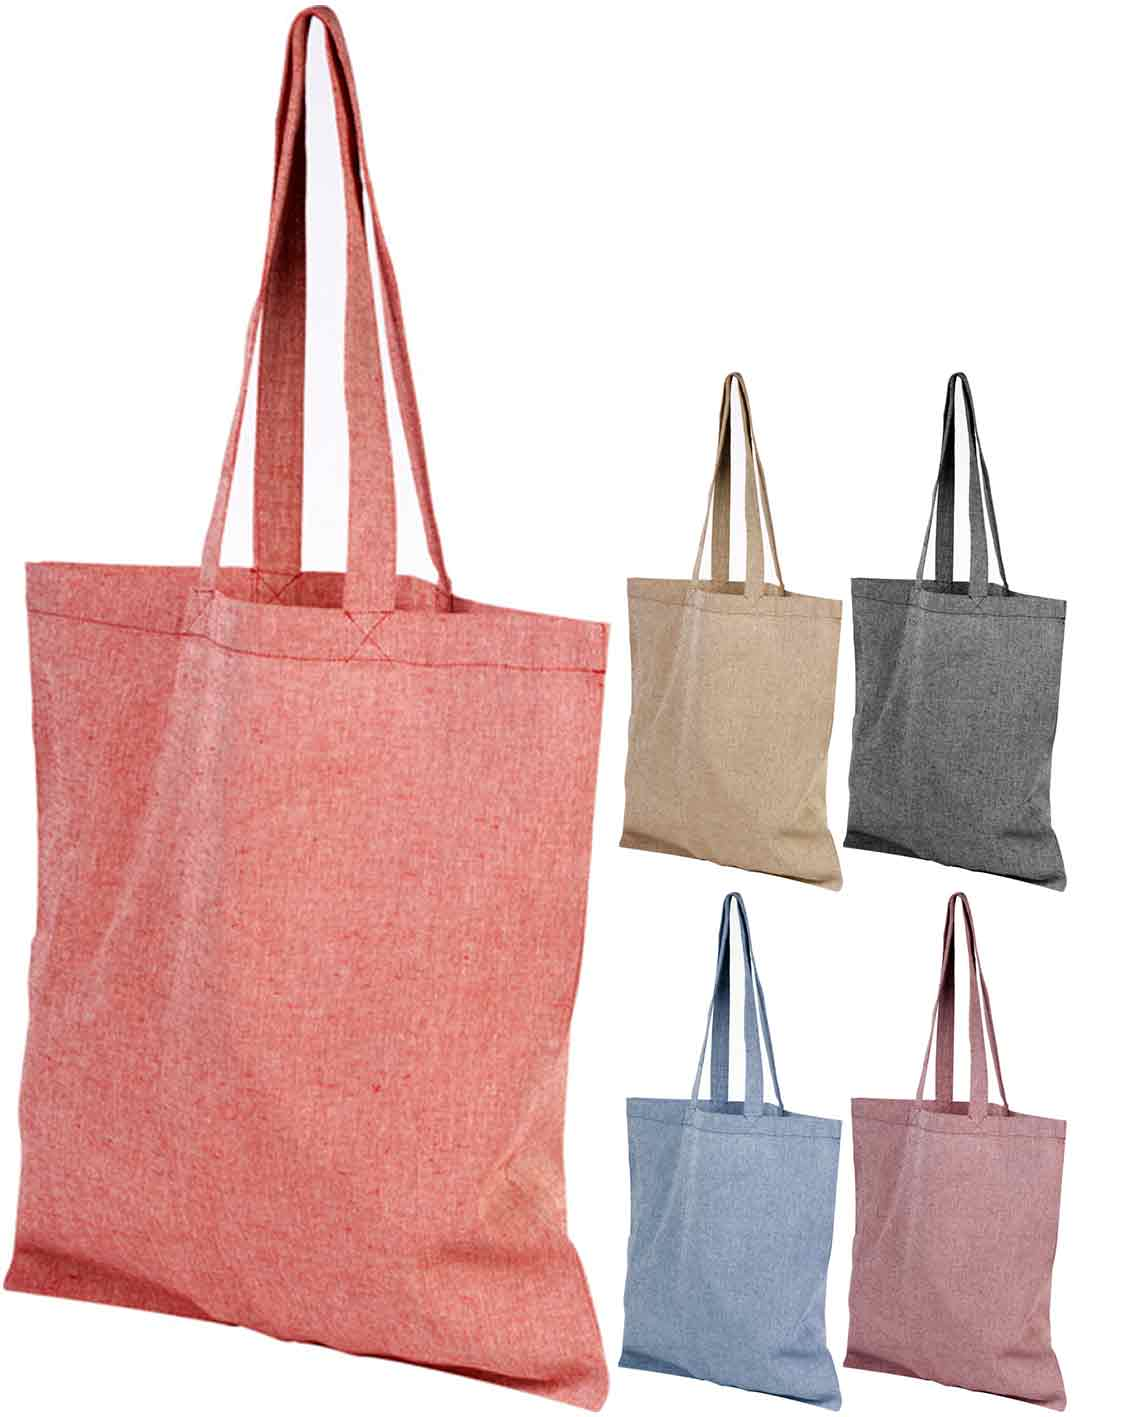 Group image of Pheebs Branded Recycled Tote Bags. Available in 5 Colours from The Promobag Warehouse